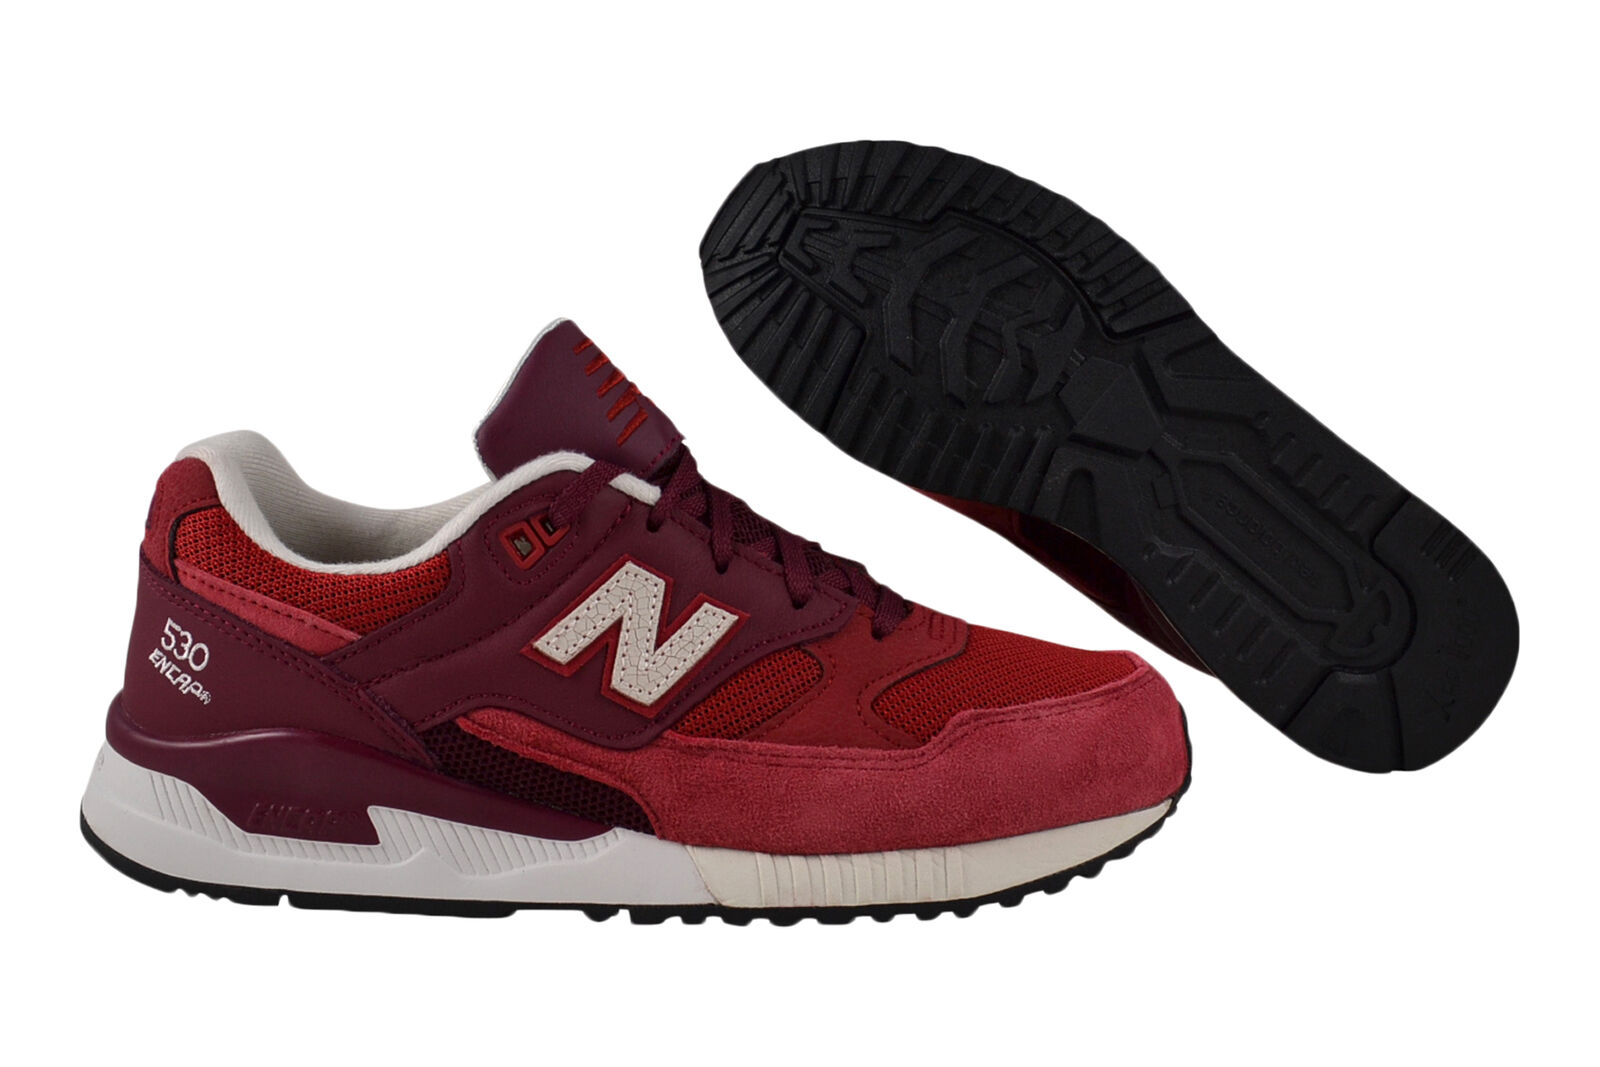 New Balance M530 OXB red Sneaker/Schuhe rot